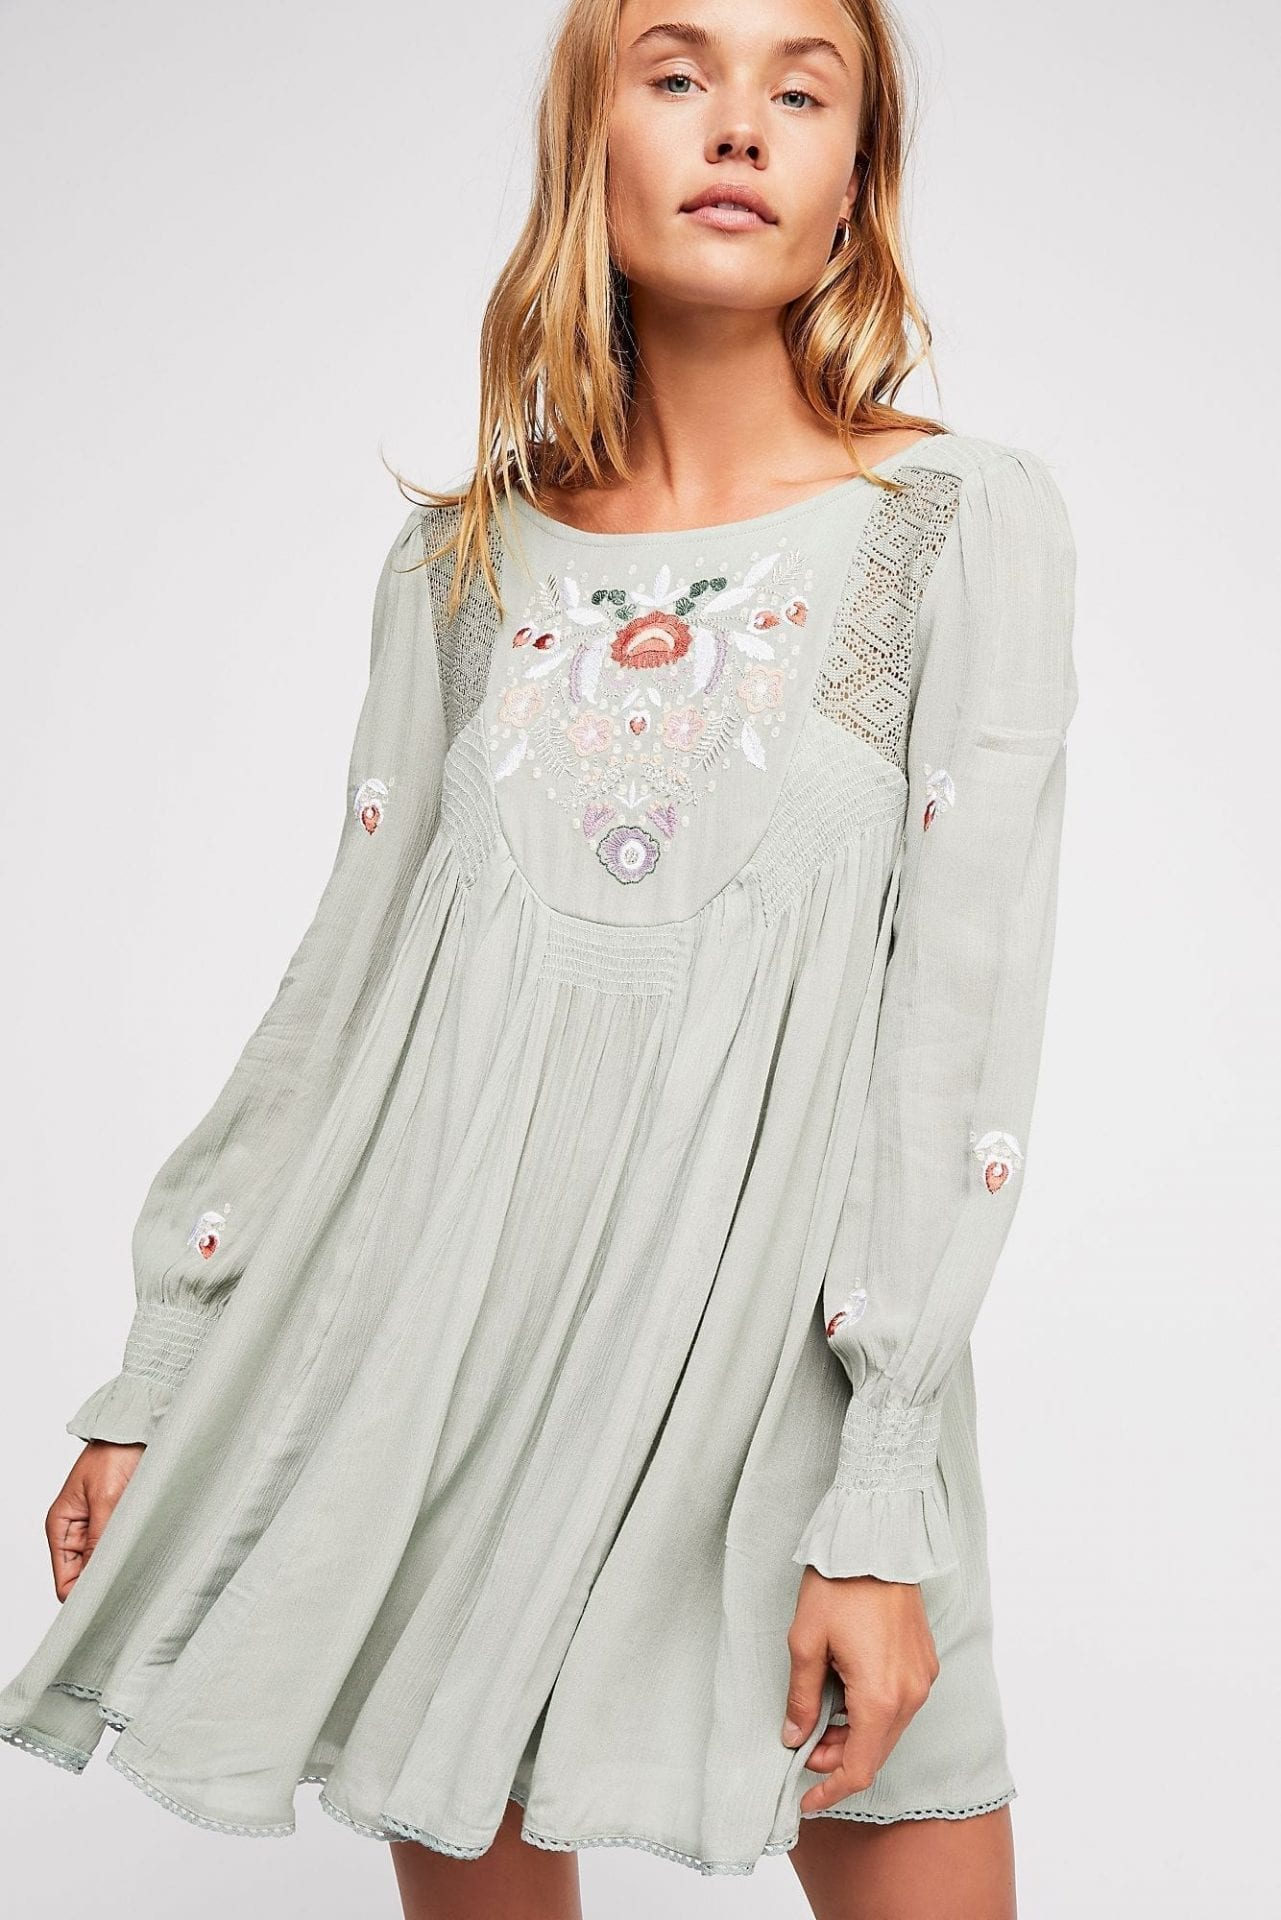 FREEPEOPLE Moya Embroidered Mini Seafoam Dress